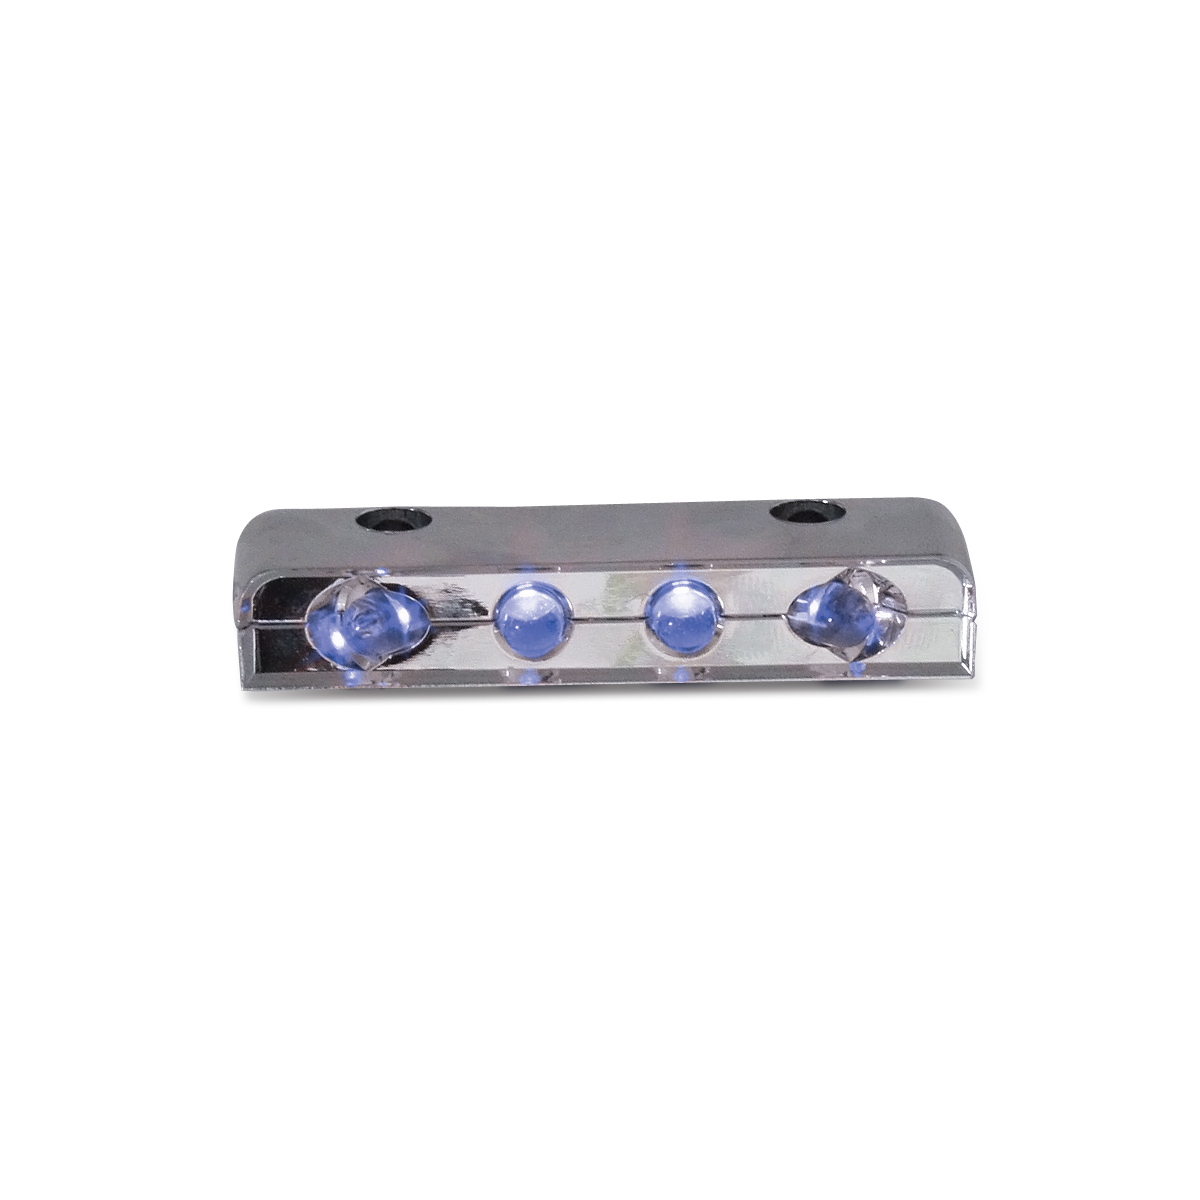 77101 Blue 4 LED Step Light